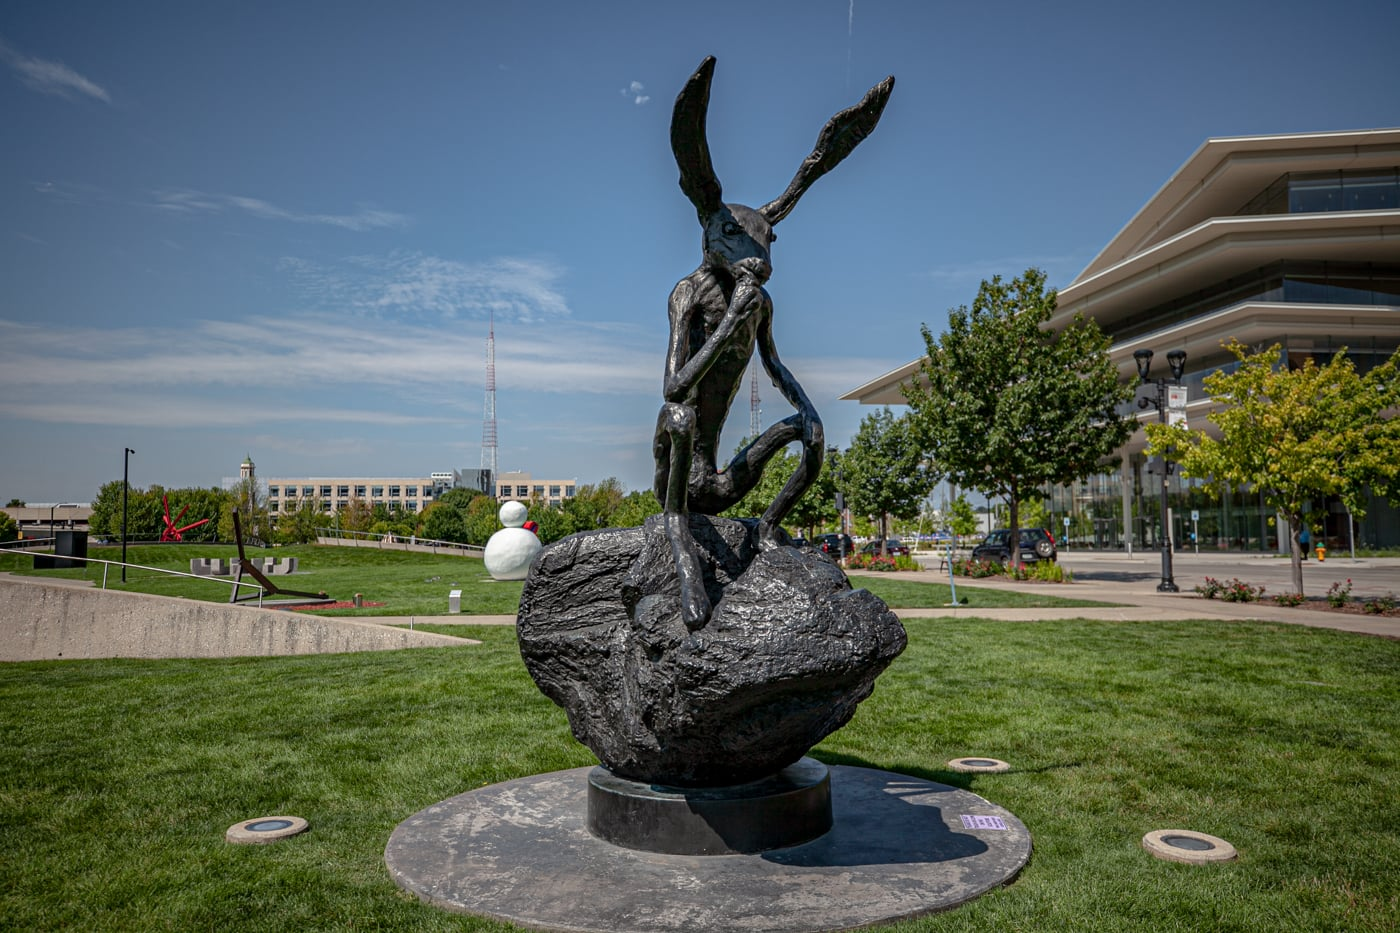 Barry Flanagan Thinker on a Rock Rabbit | Pappajohn Sculpture Park in Des Moines, Iowa